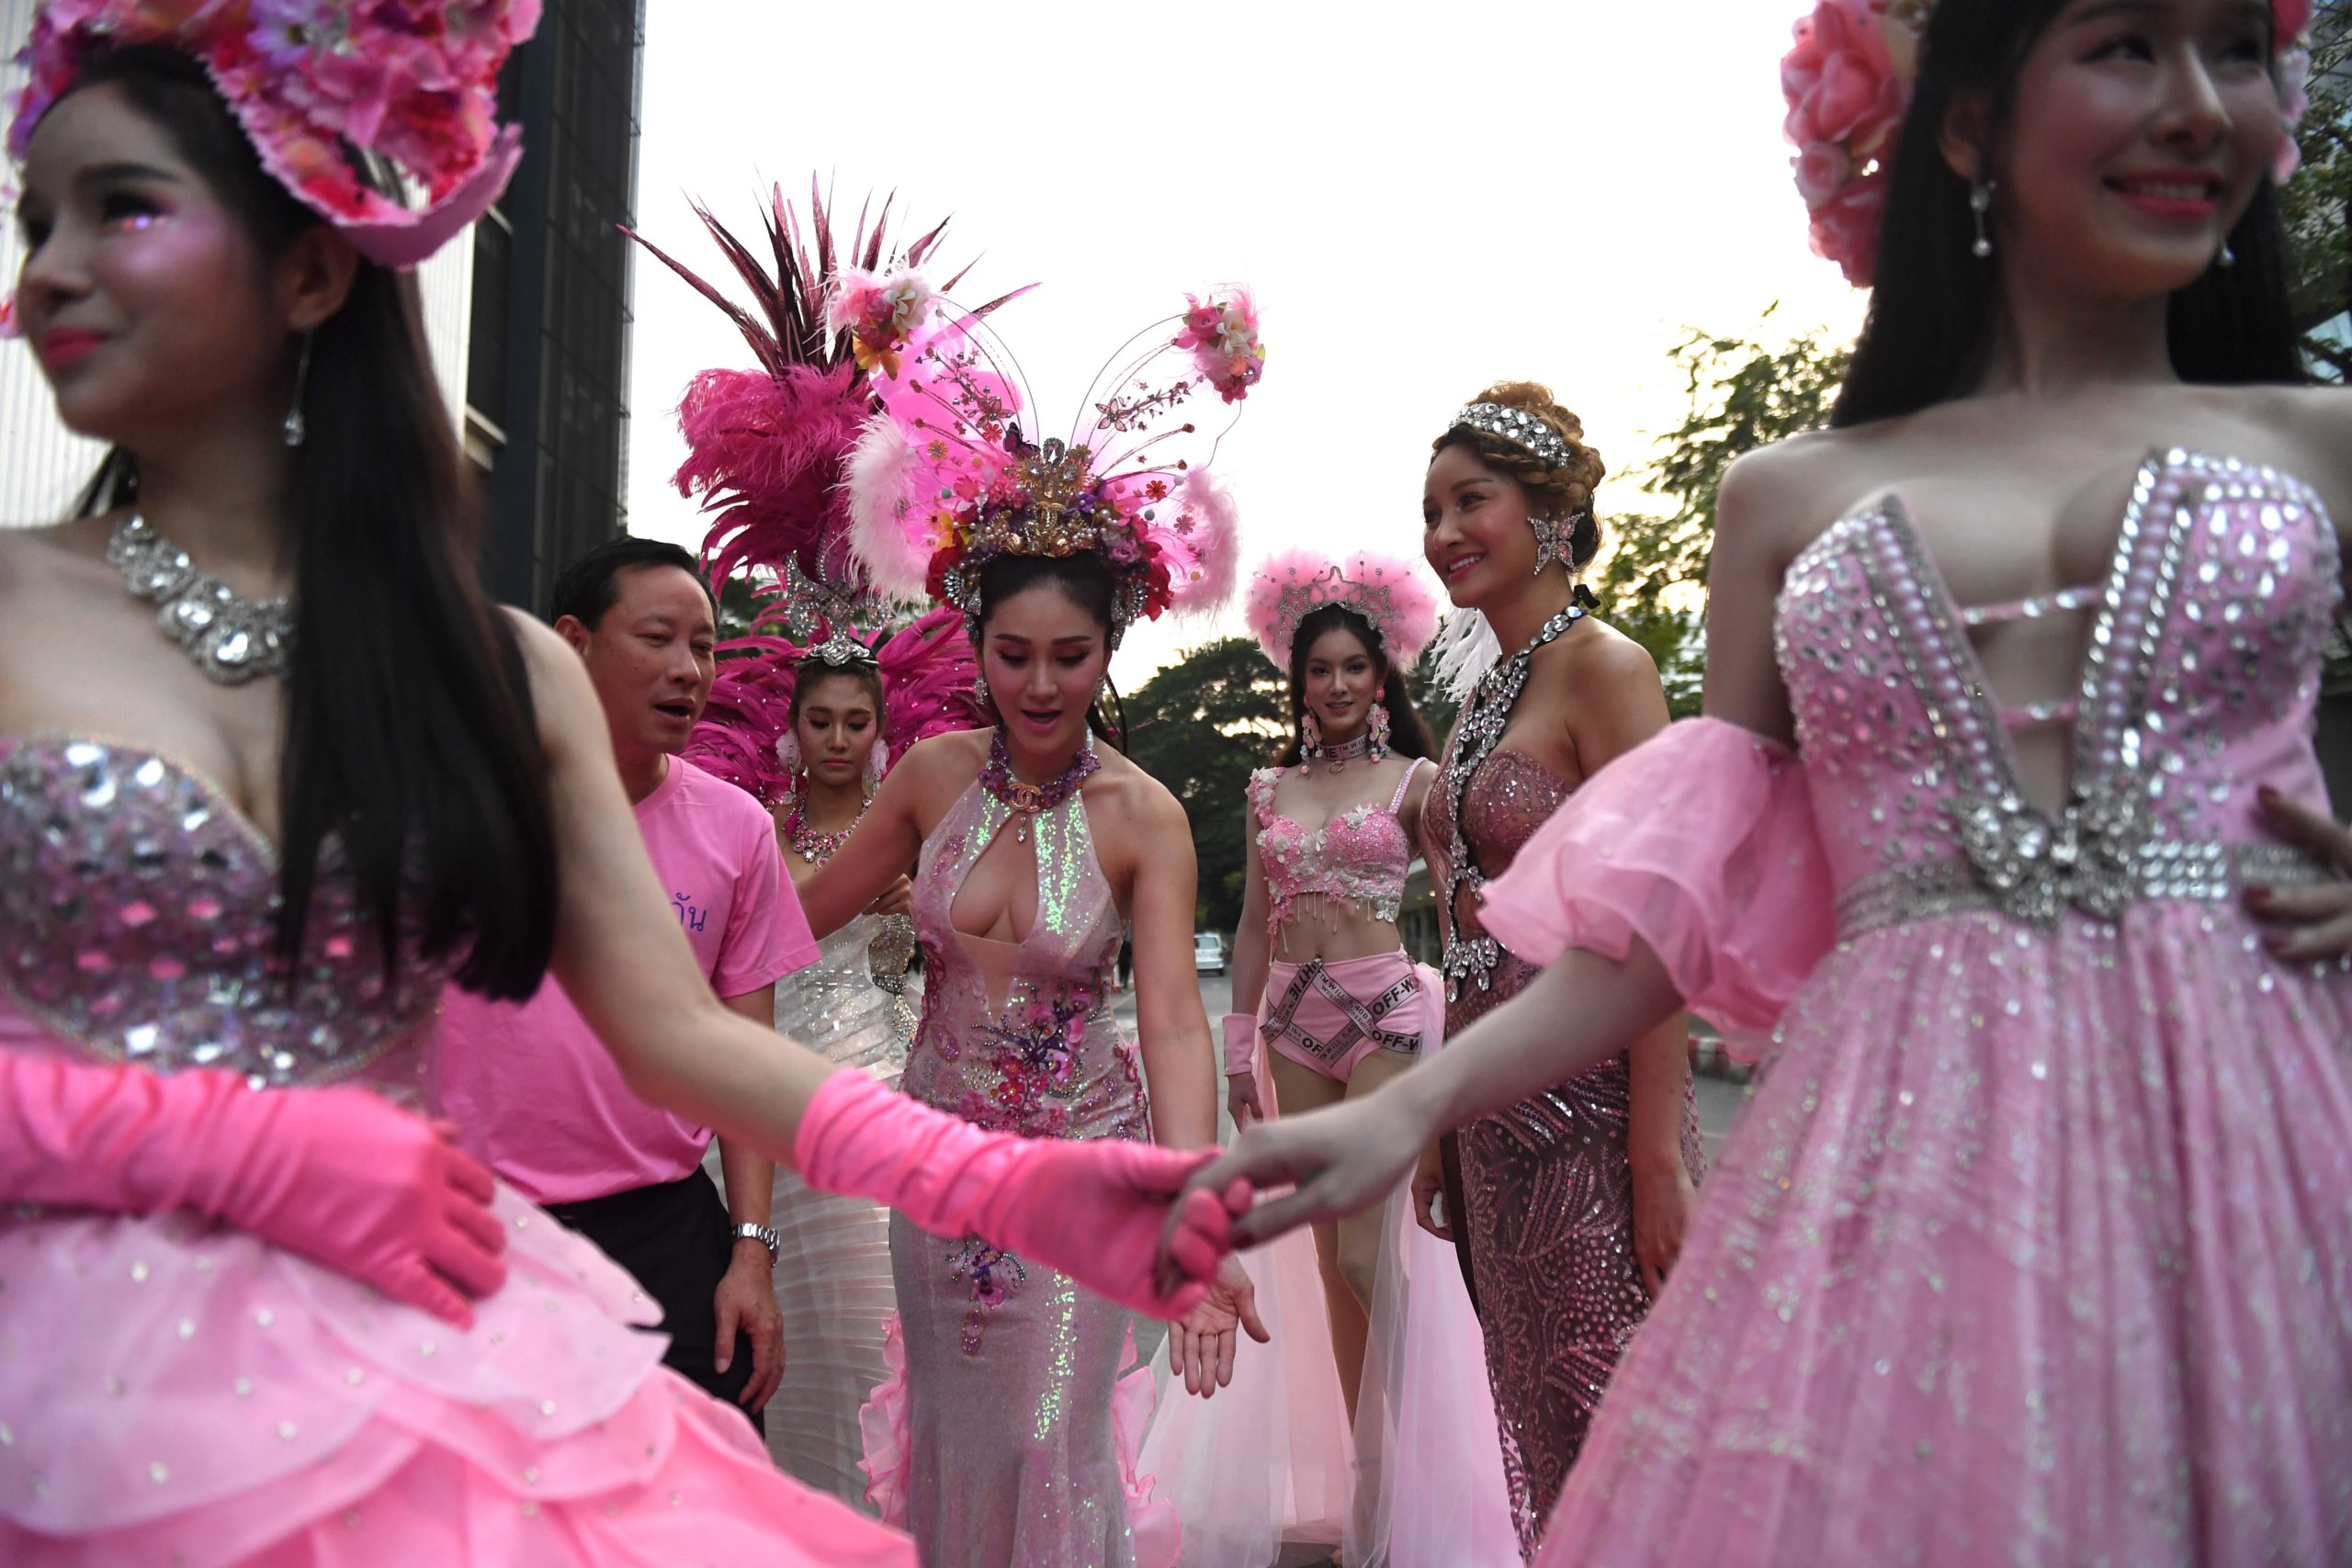 Thailand takes historic step towards giving same-sex couples legal recognition and adoption rights